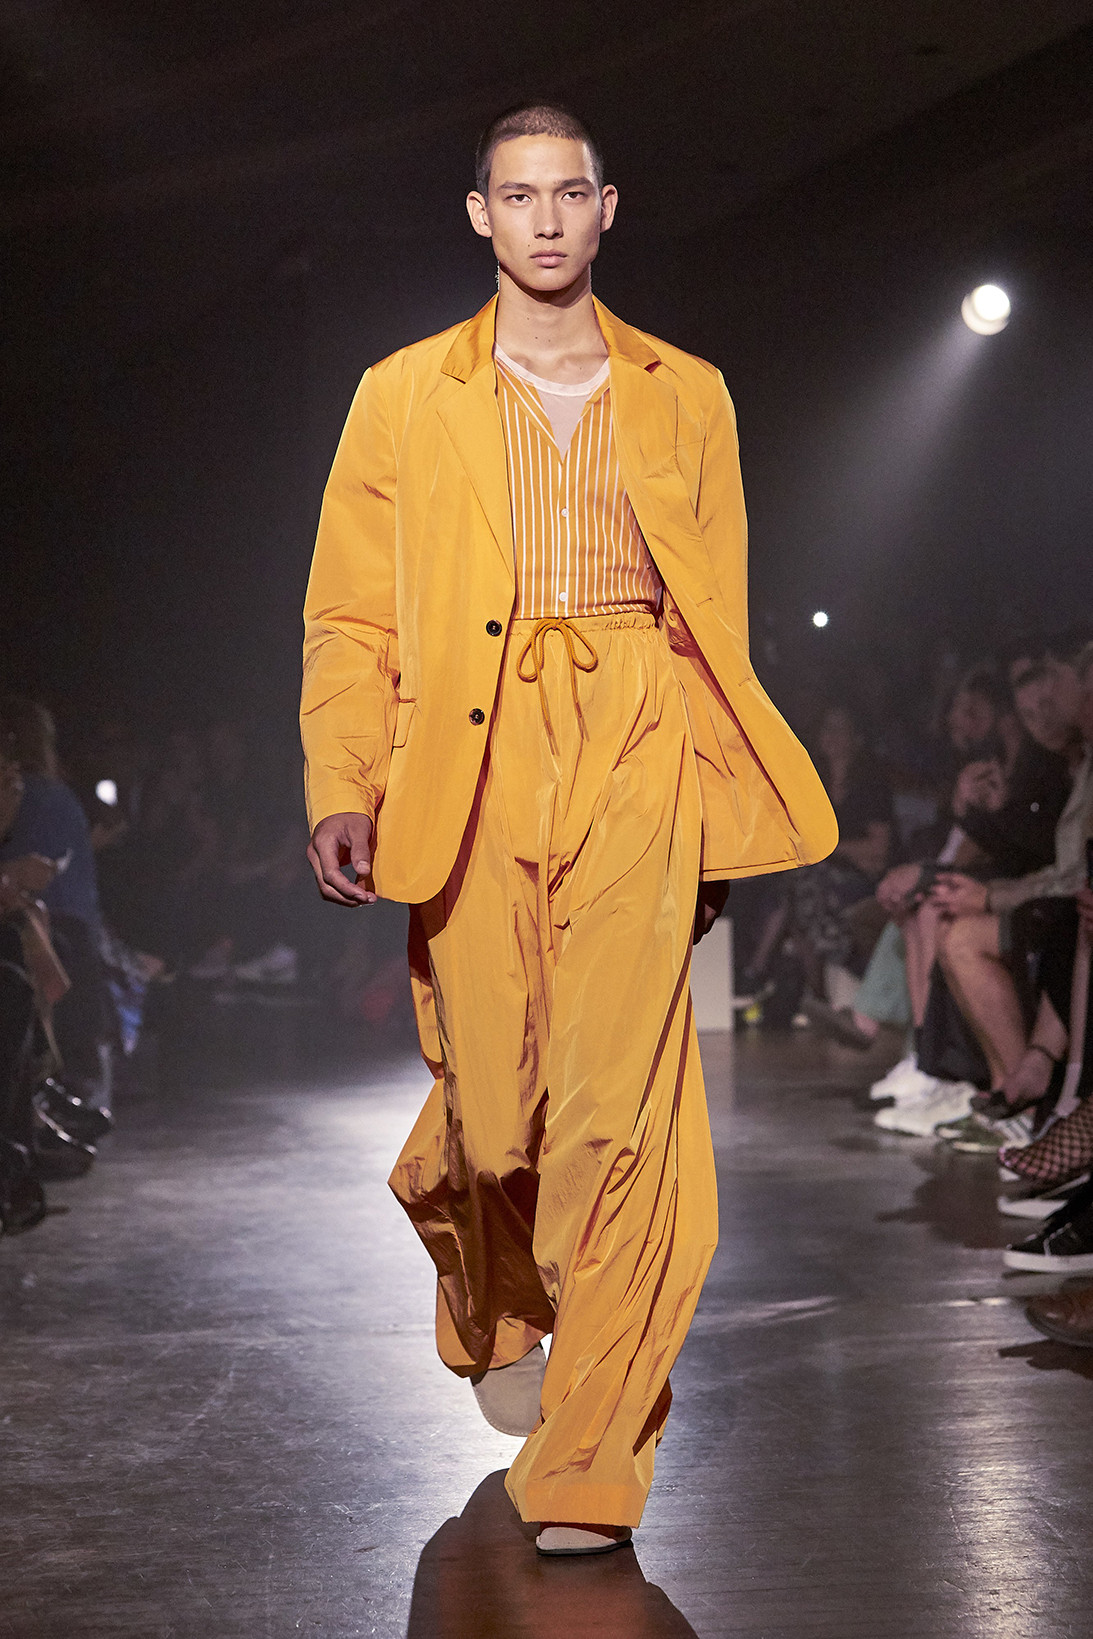 Kenzo SpringSummer 2019 Collection – Paris Fashion Week